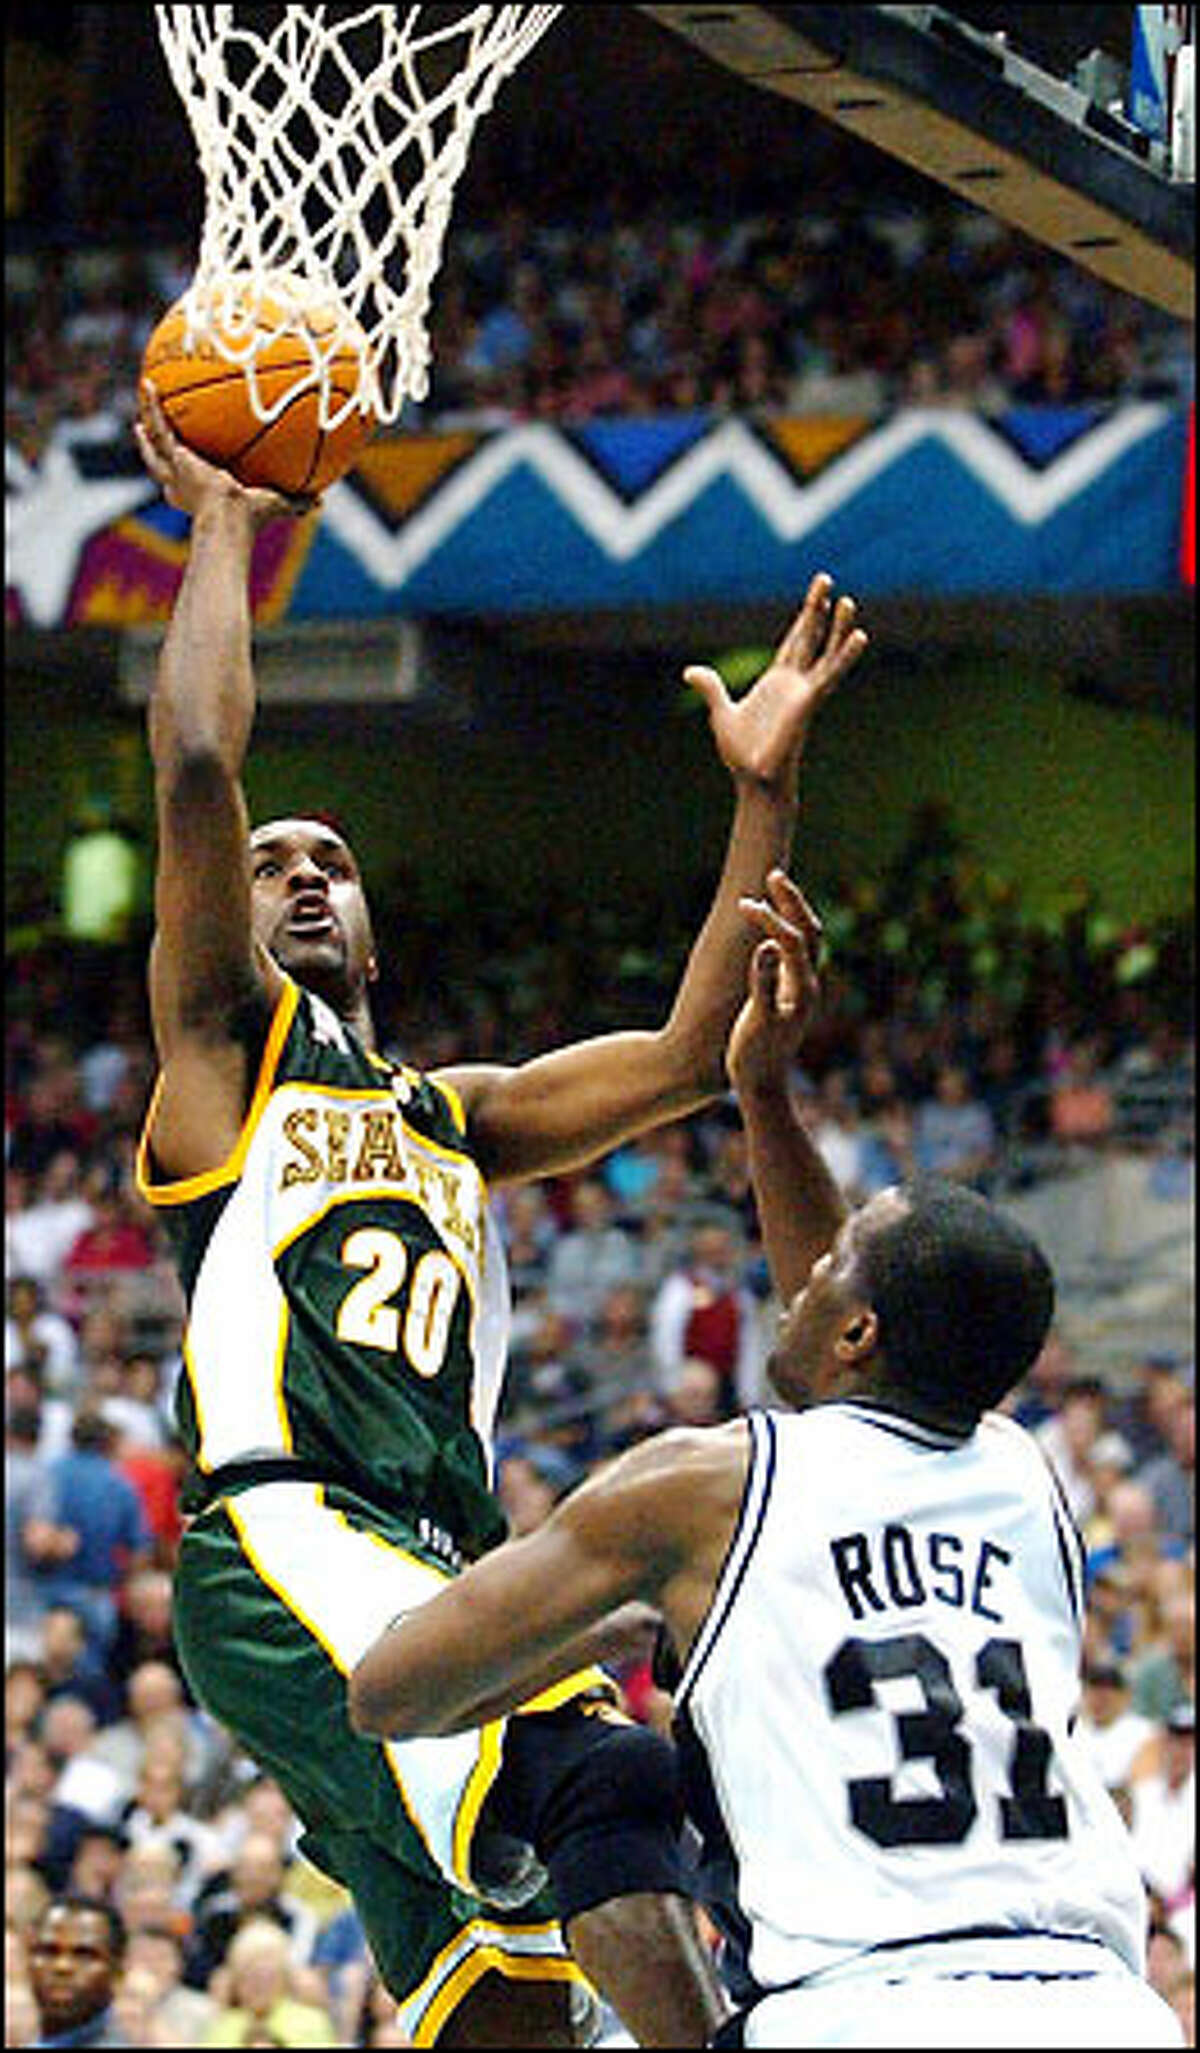 Gary Payton shoots over San Antonio's Malik Rose during the second quarter.